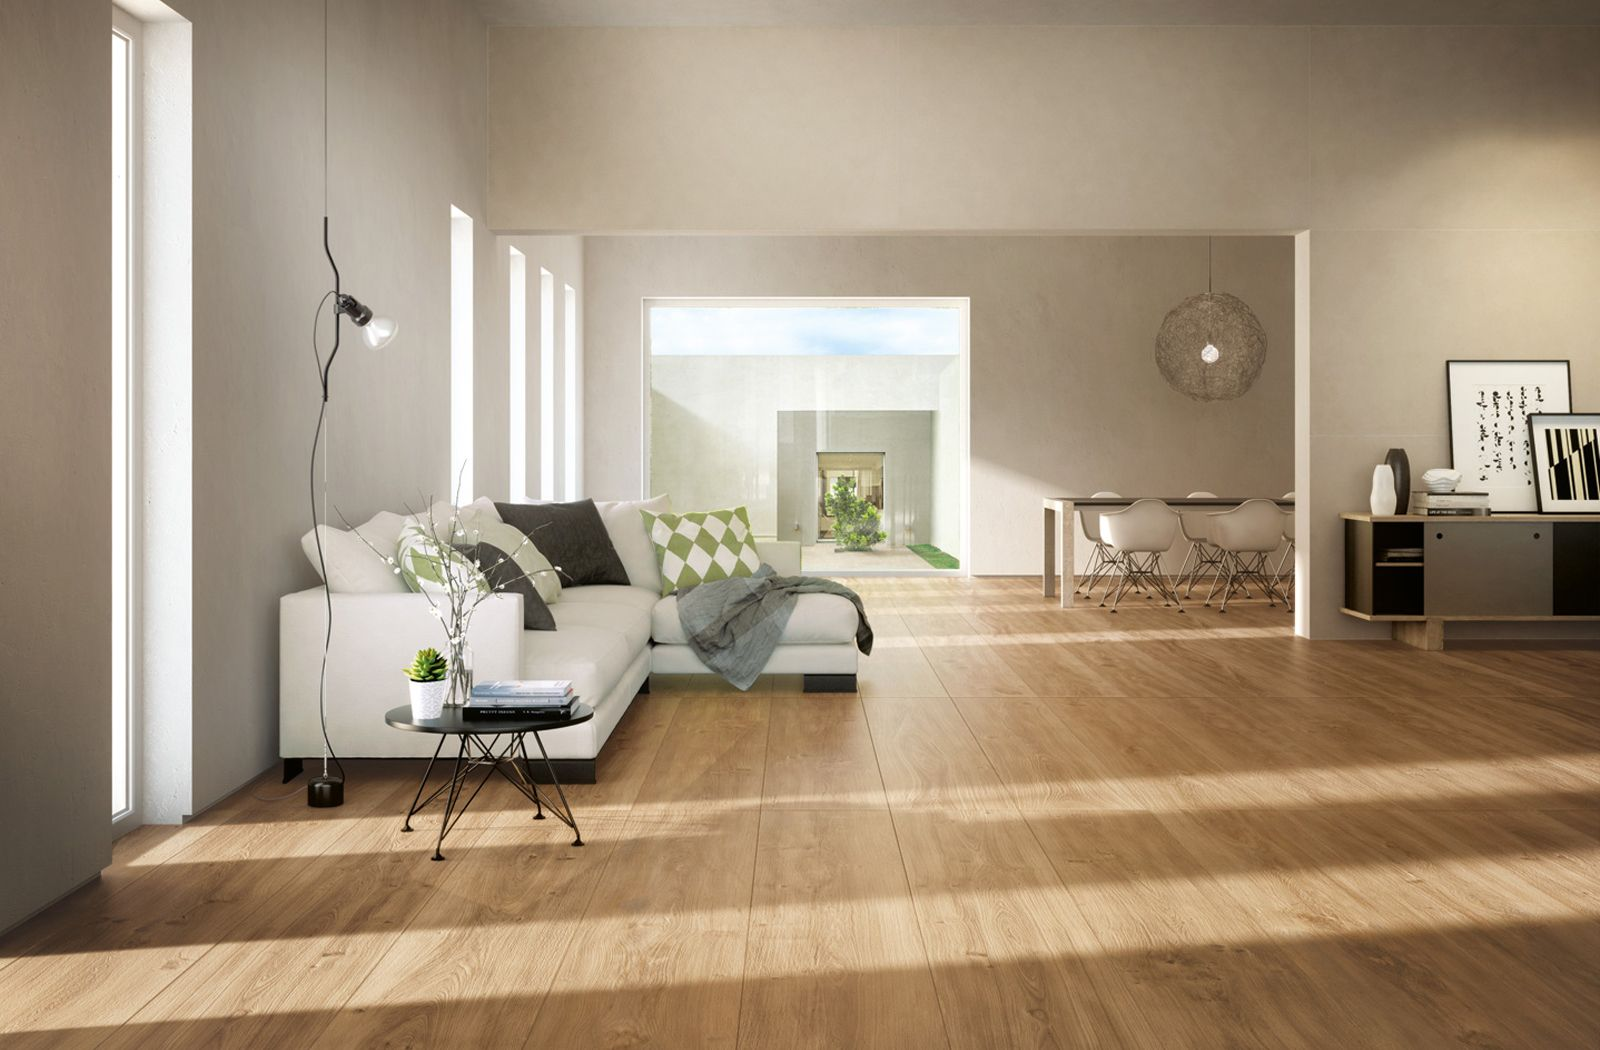 Simple Living Room Decor With Wood Like Tiles Komi Tile Collection From Ceramica Fondovalle Simple Living Room Decor Living Room Flooring House Flooring